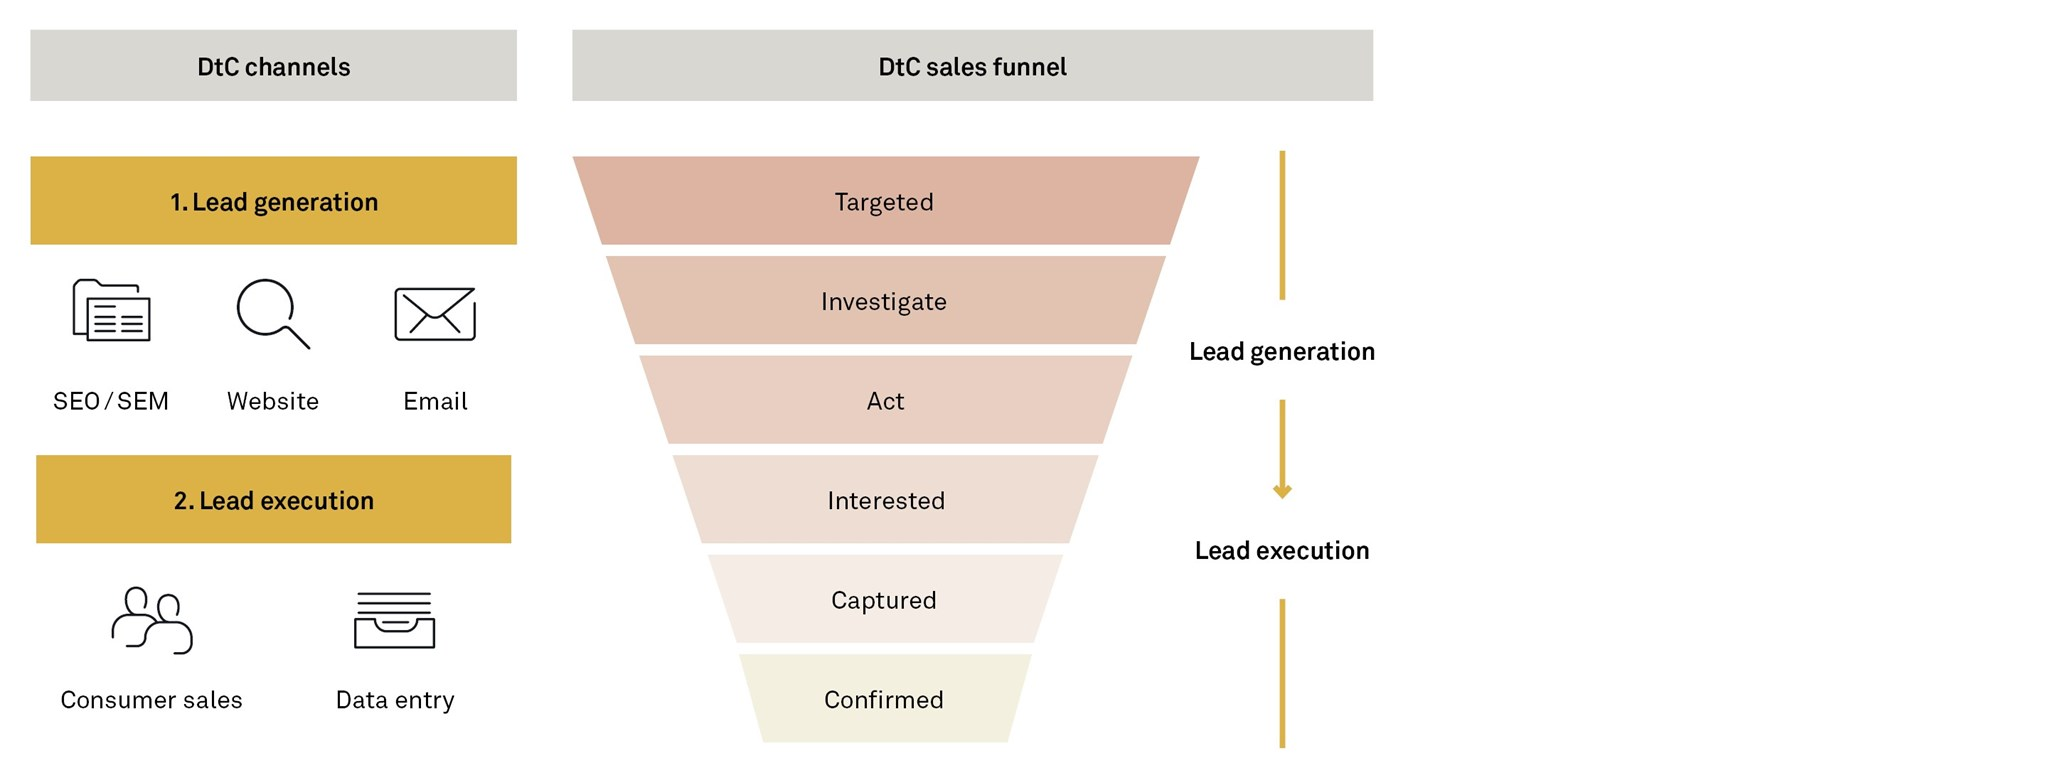 Direct-to-consumer channels and sales funnel